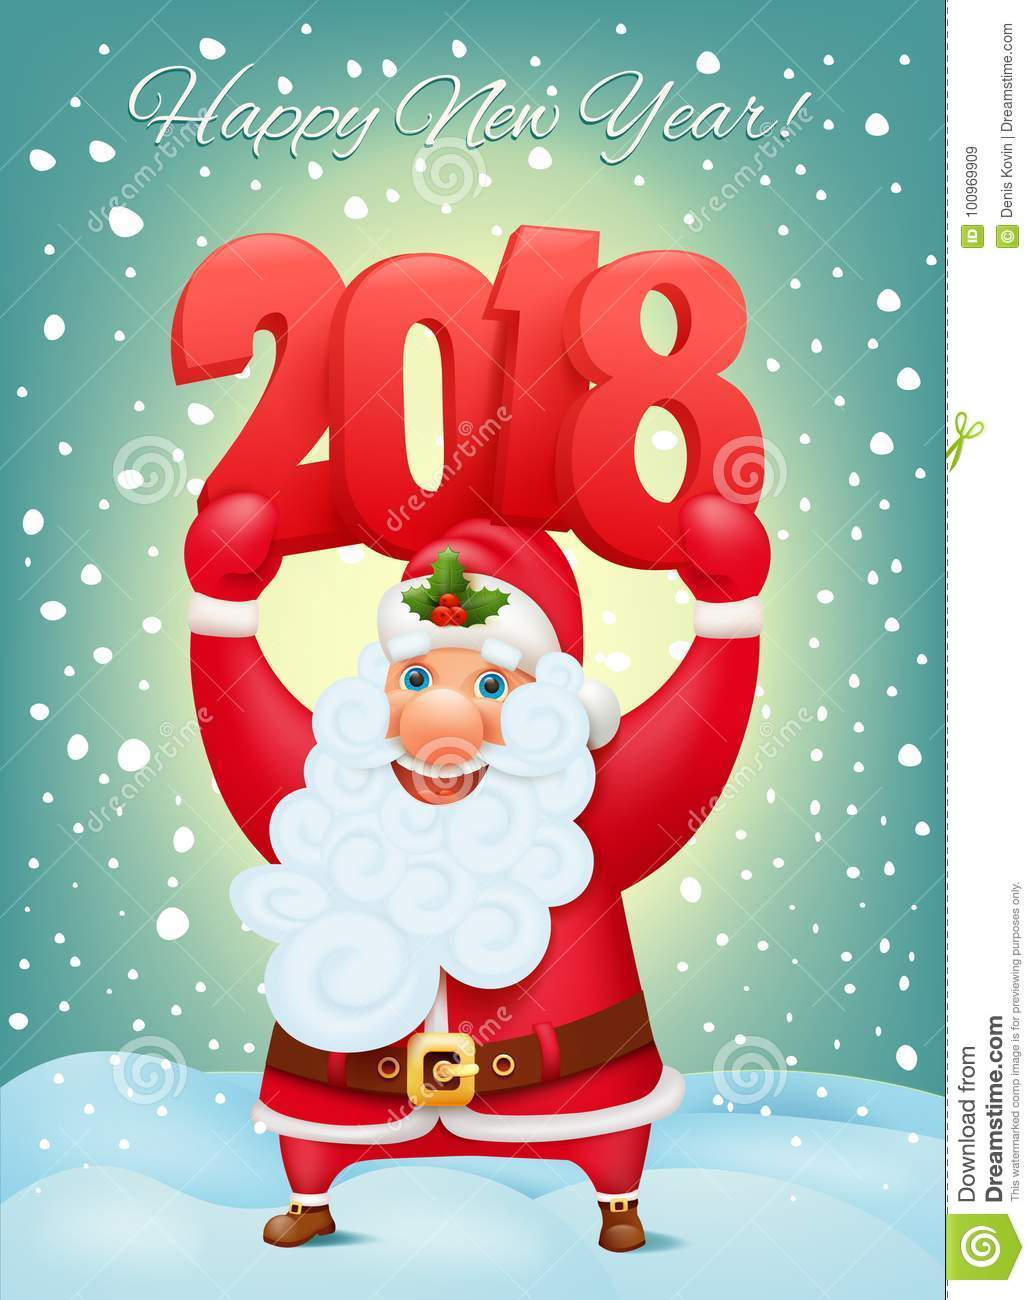 santa claus cartoon character holding 2018 big numbers new year invitation card temolate